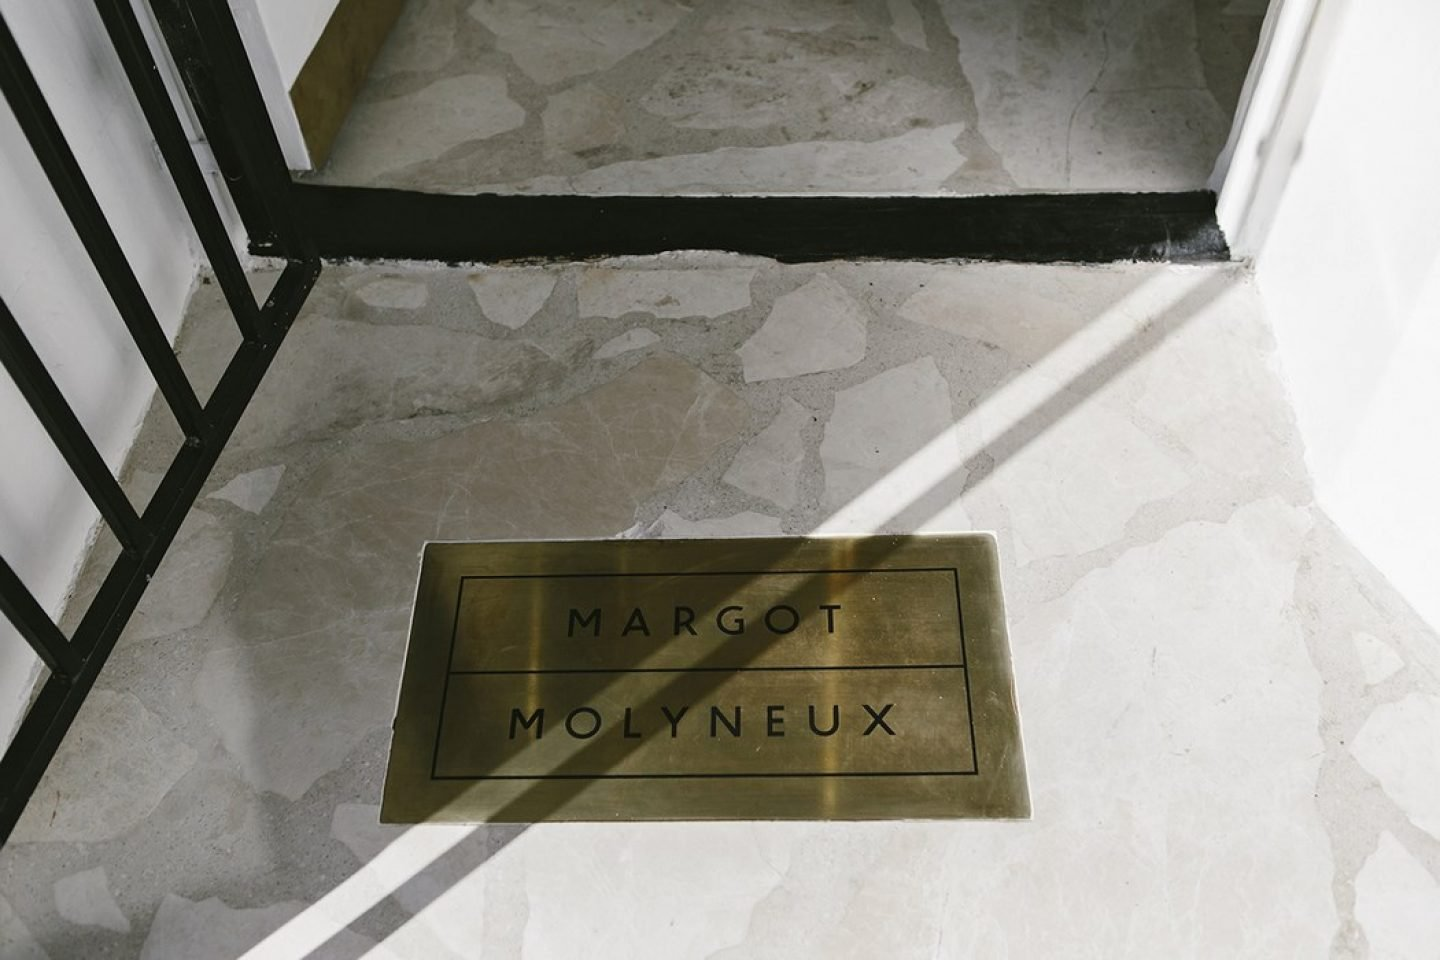 Margot_Molyneux_Places (3)